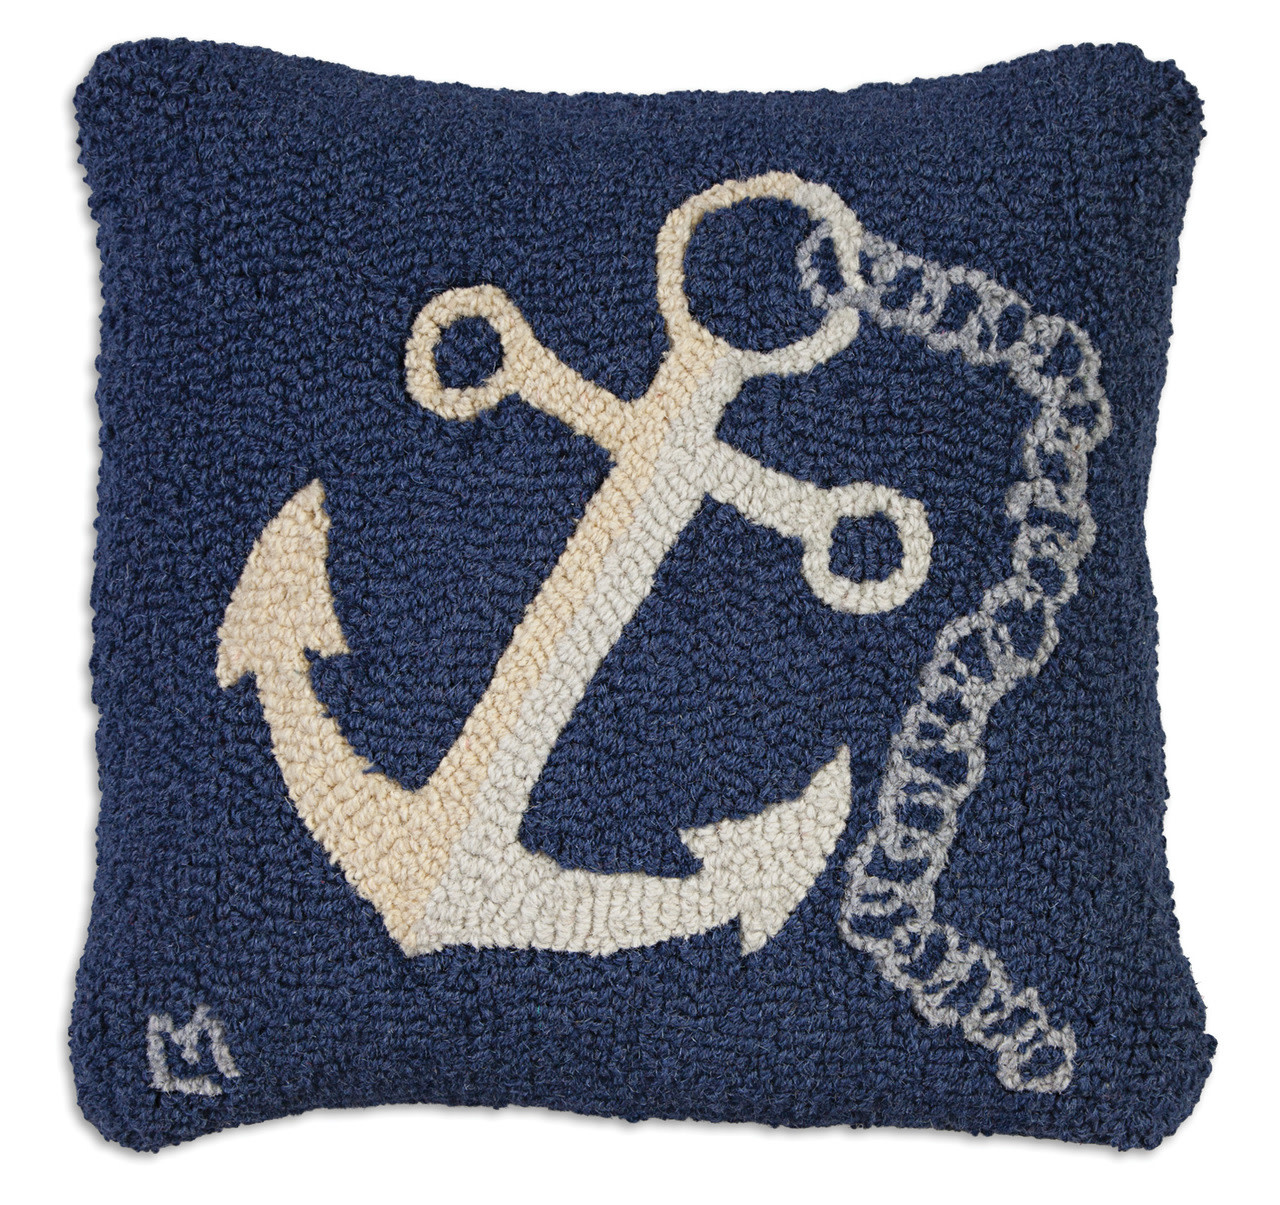 Anchor with Chain 18x18 Hooked Pillow